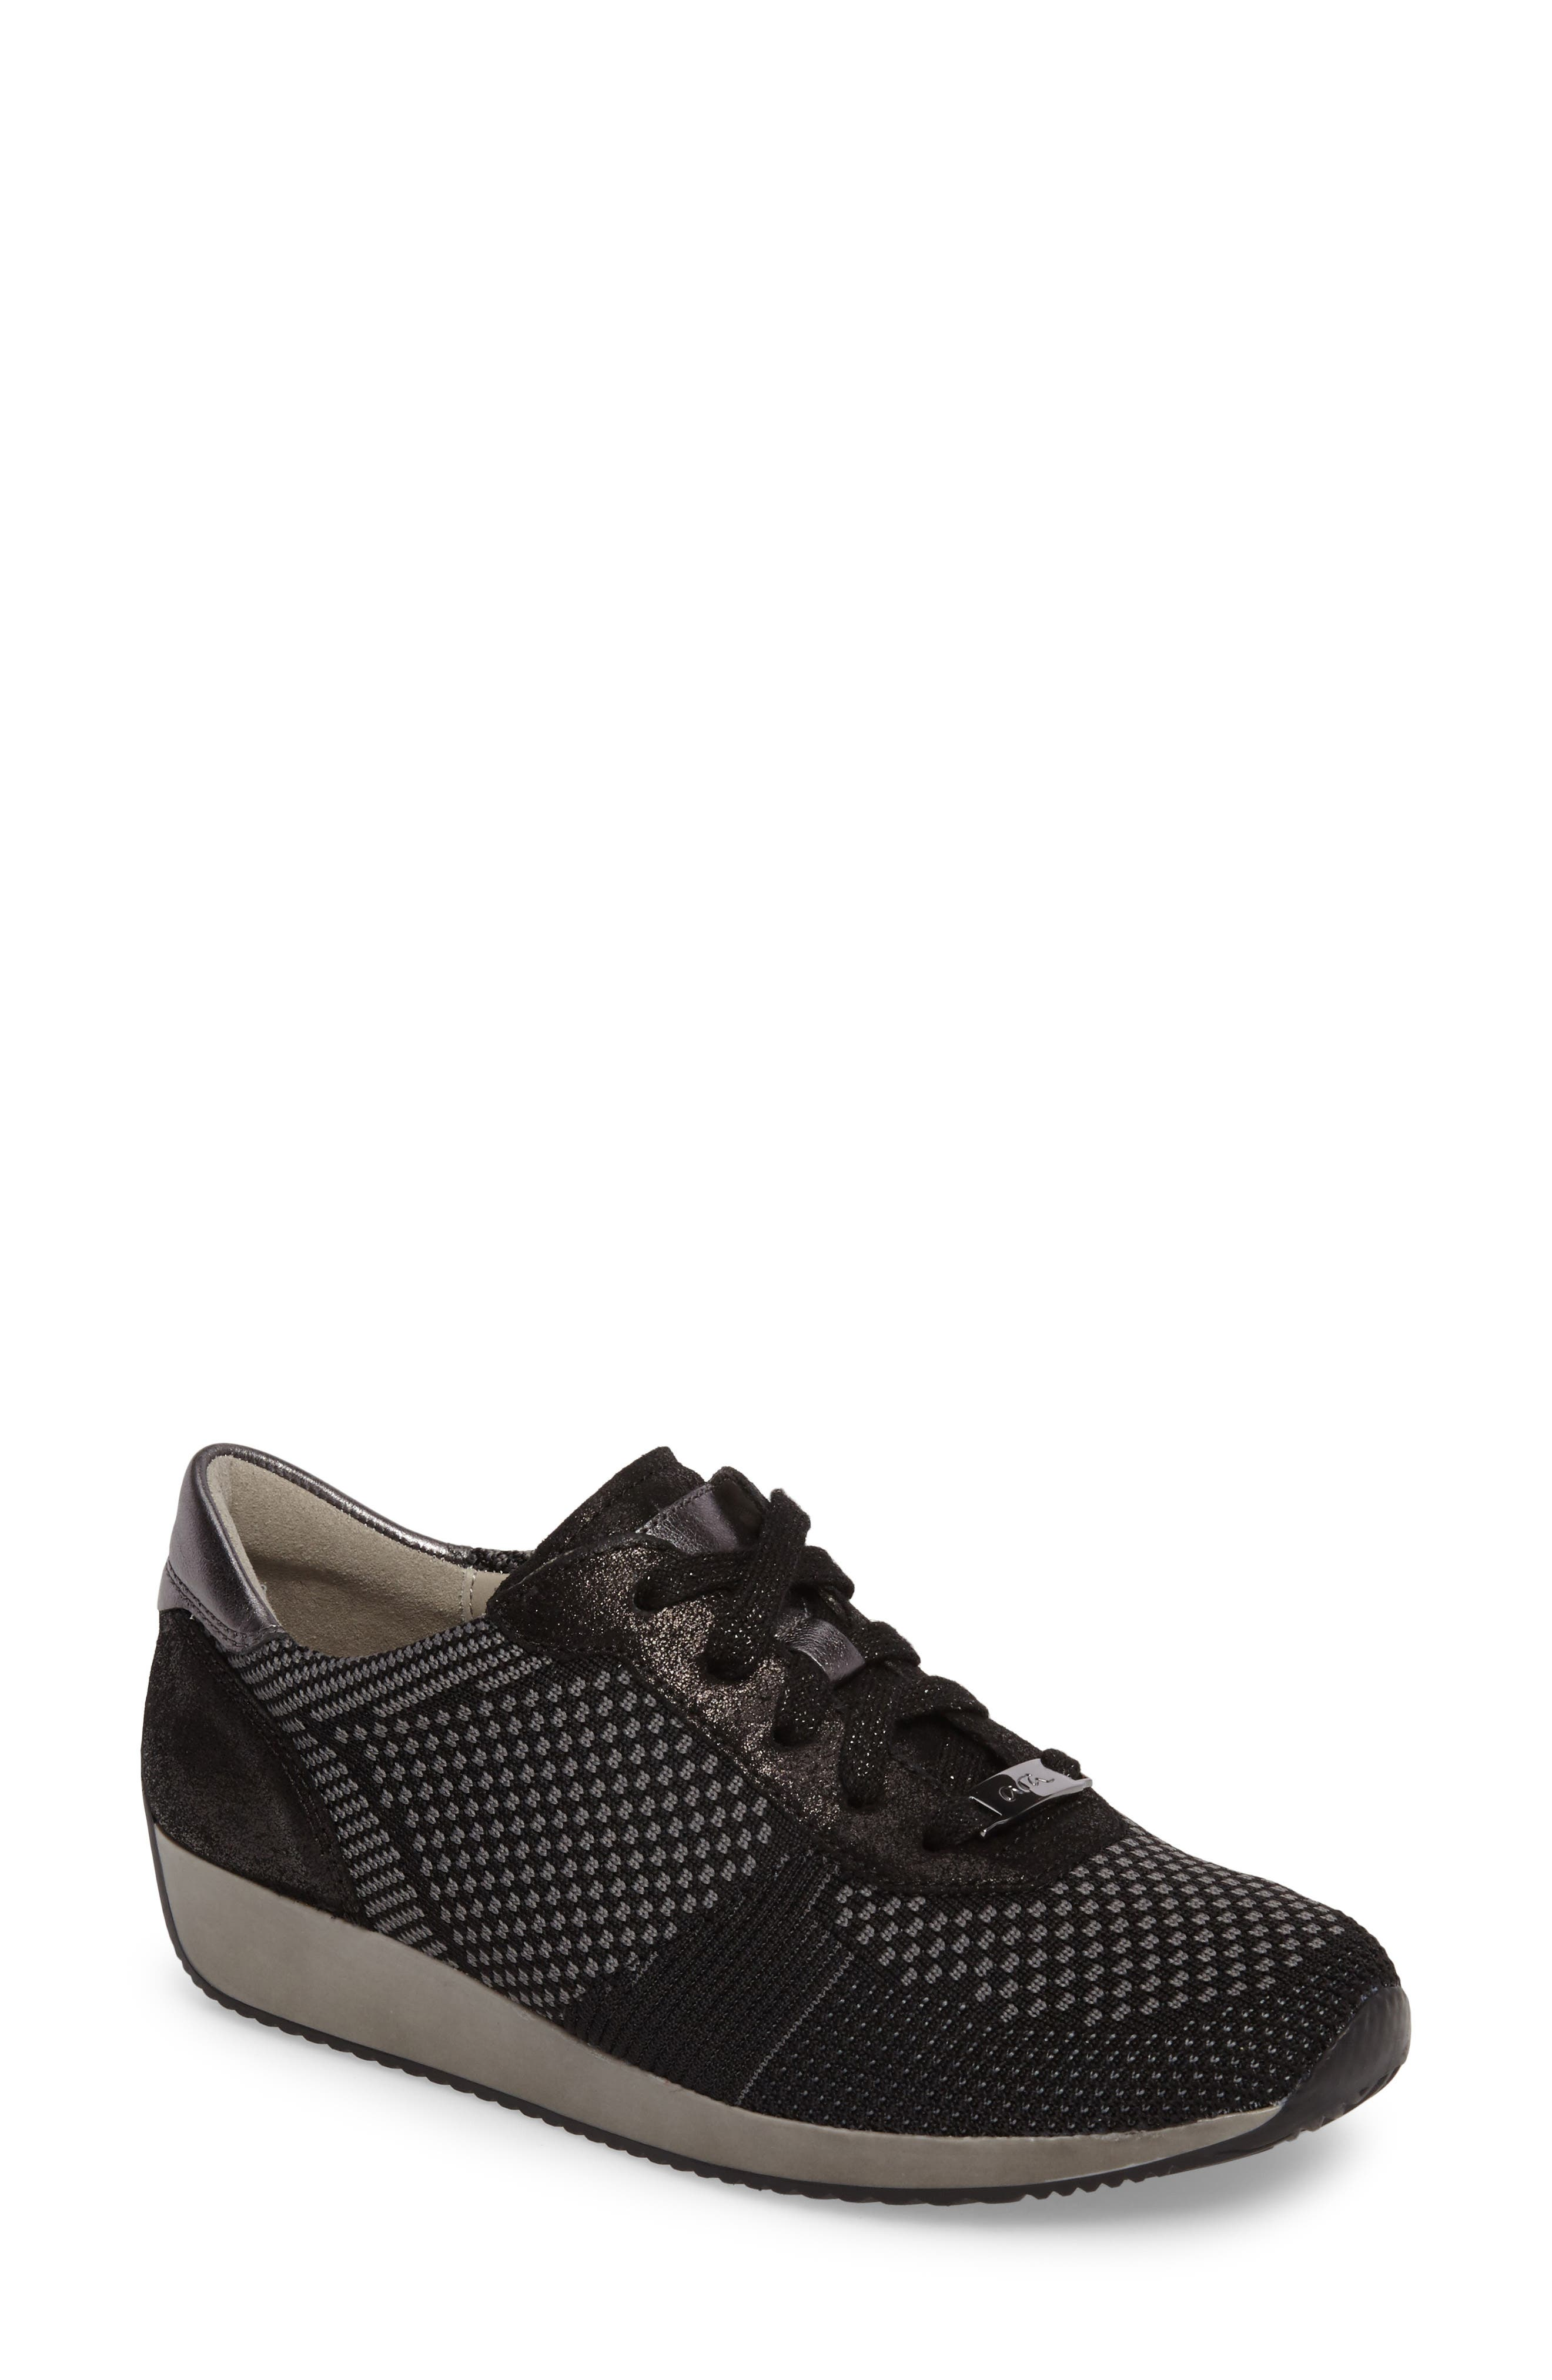 Lilly Sneaker,                             Main thumbnail 1, color,                             Black Leather